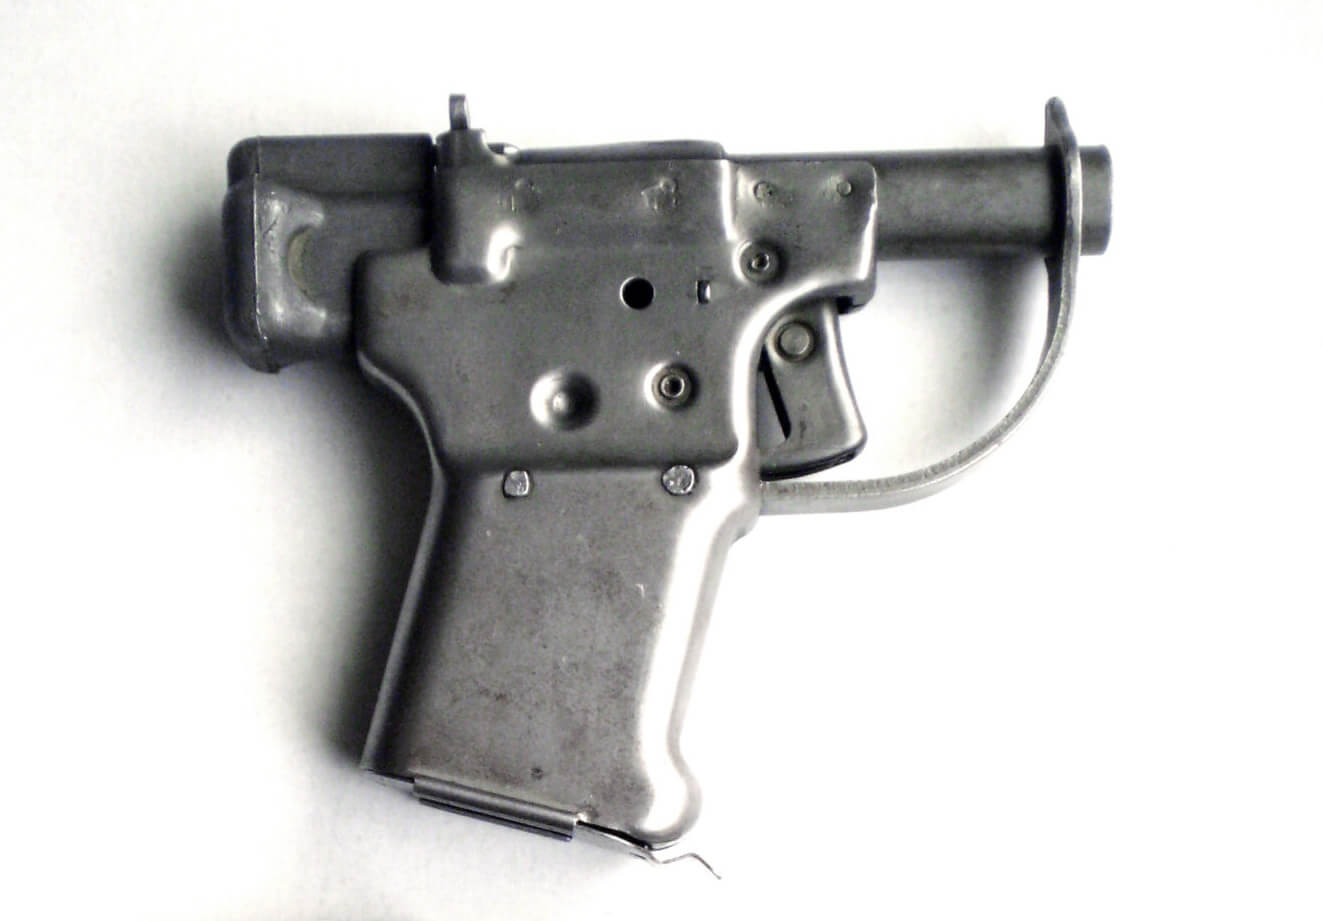 Cheap but reliable FP-45 Liberator pistol